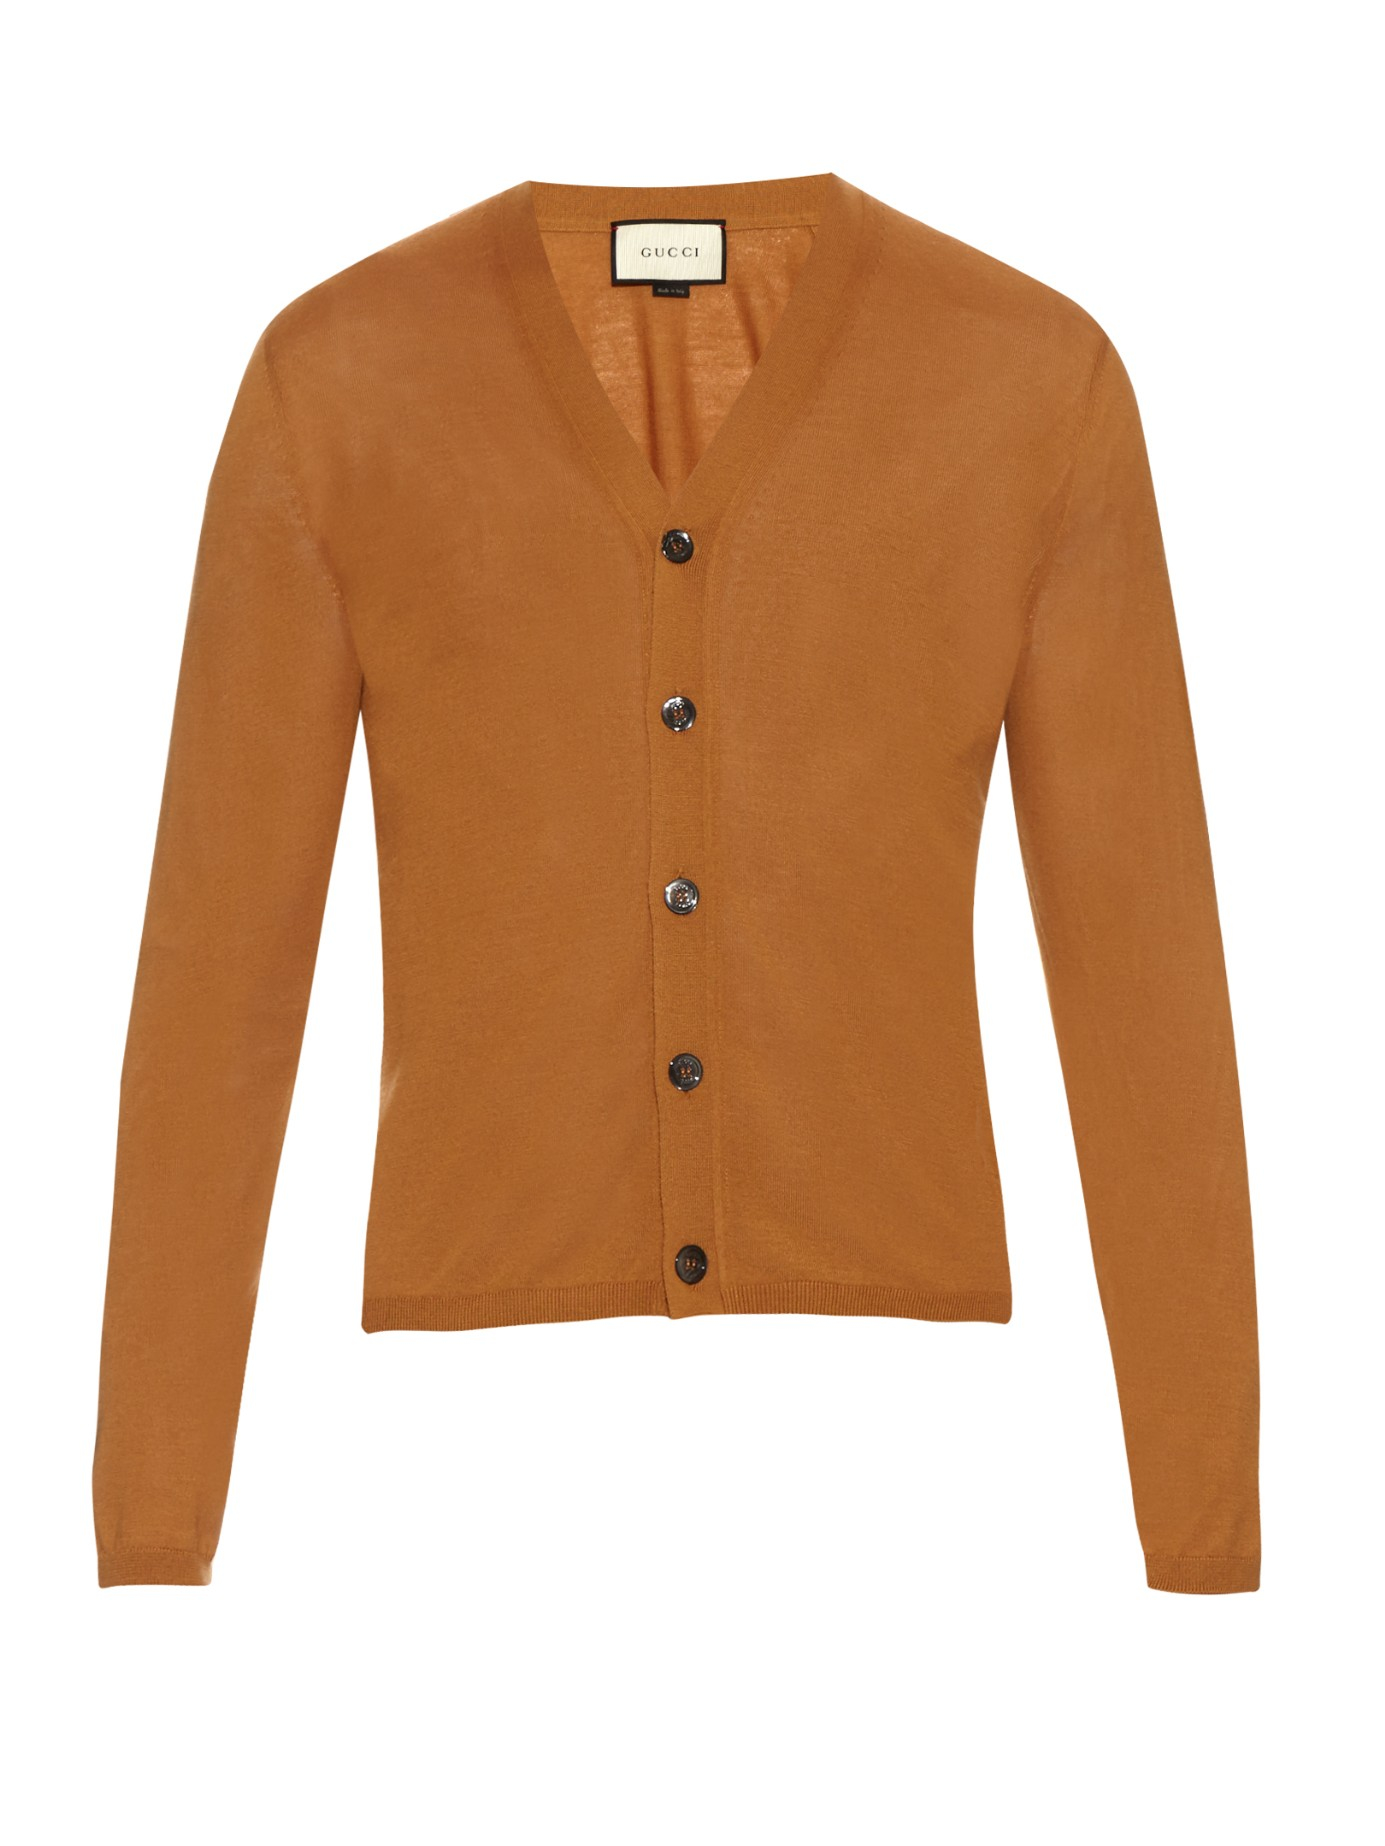 Gucci V-neck Cashmere-knit Cardigan in Orange for Men | Lyst